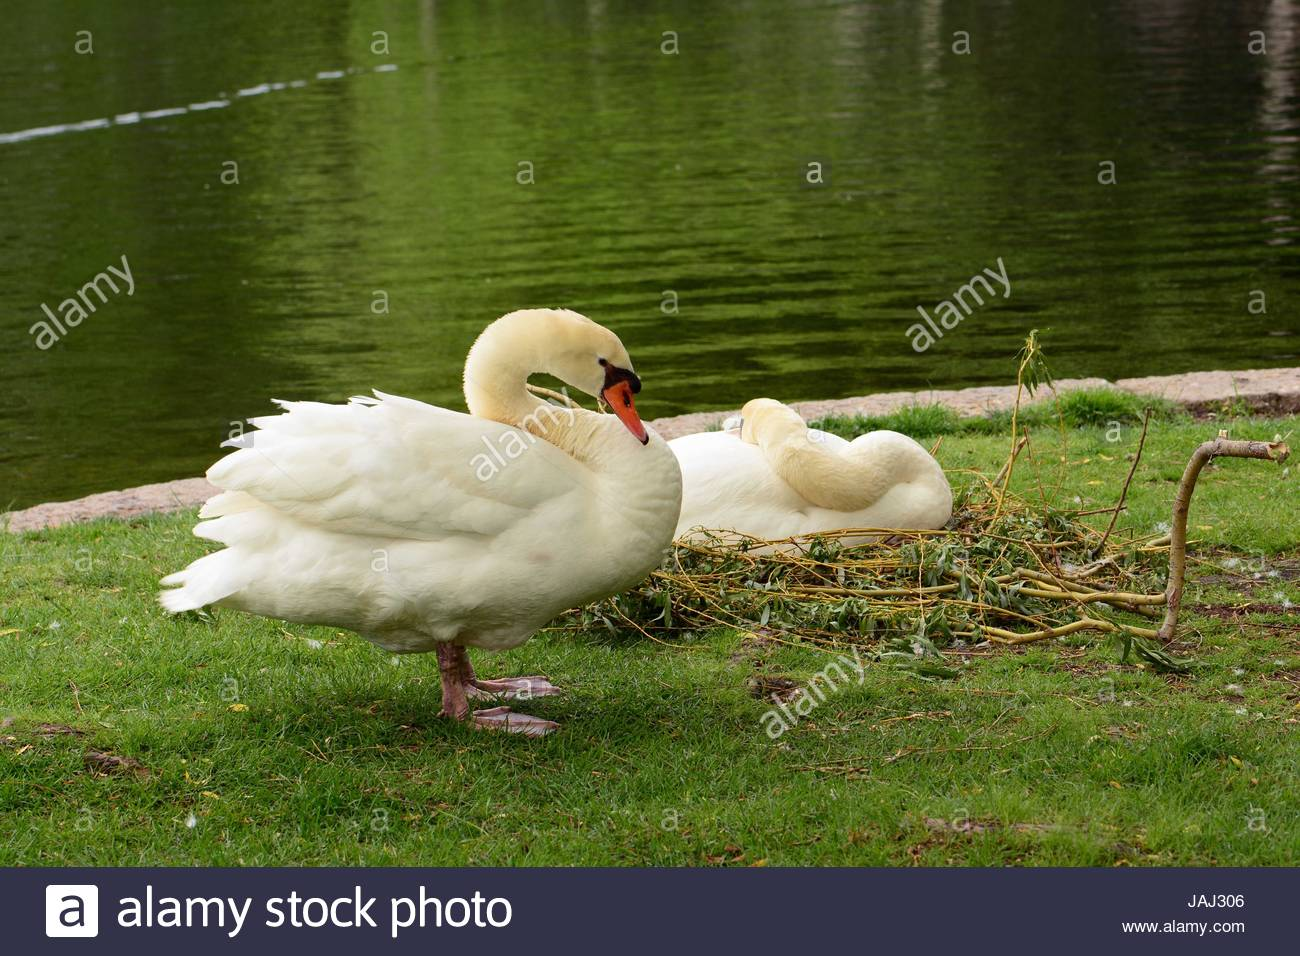 A nesting pair of mute swans, Cygnus olor, in the Public Garden. Stock Photo